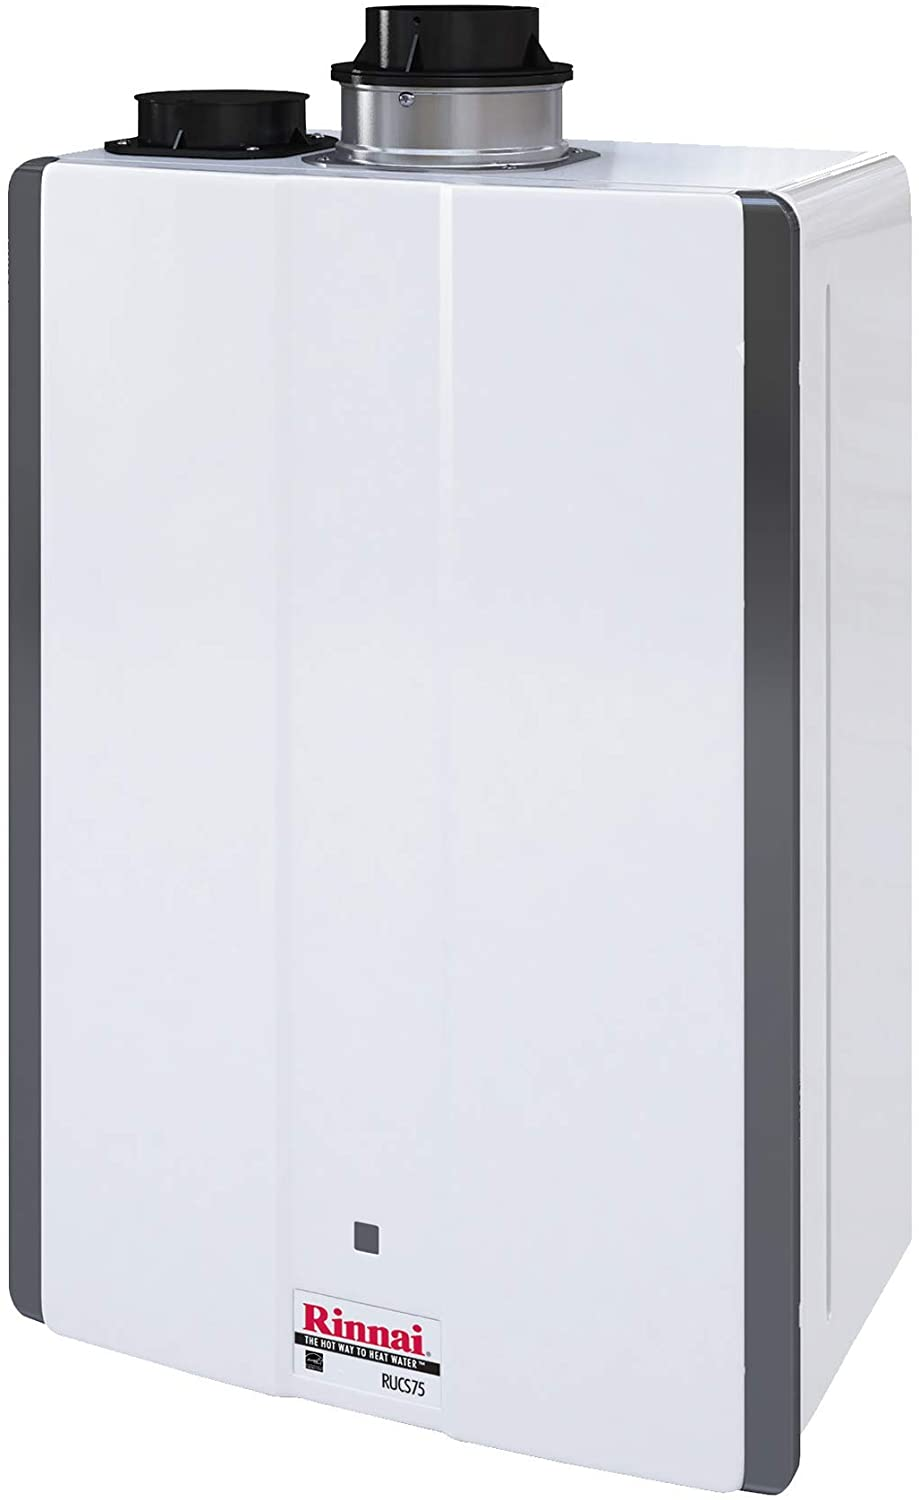 Rinnai RUCS75iN Tankless Water Heaters